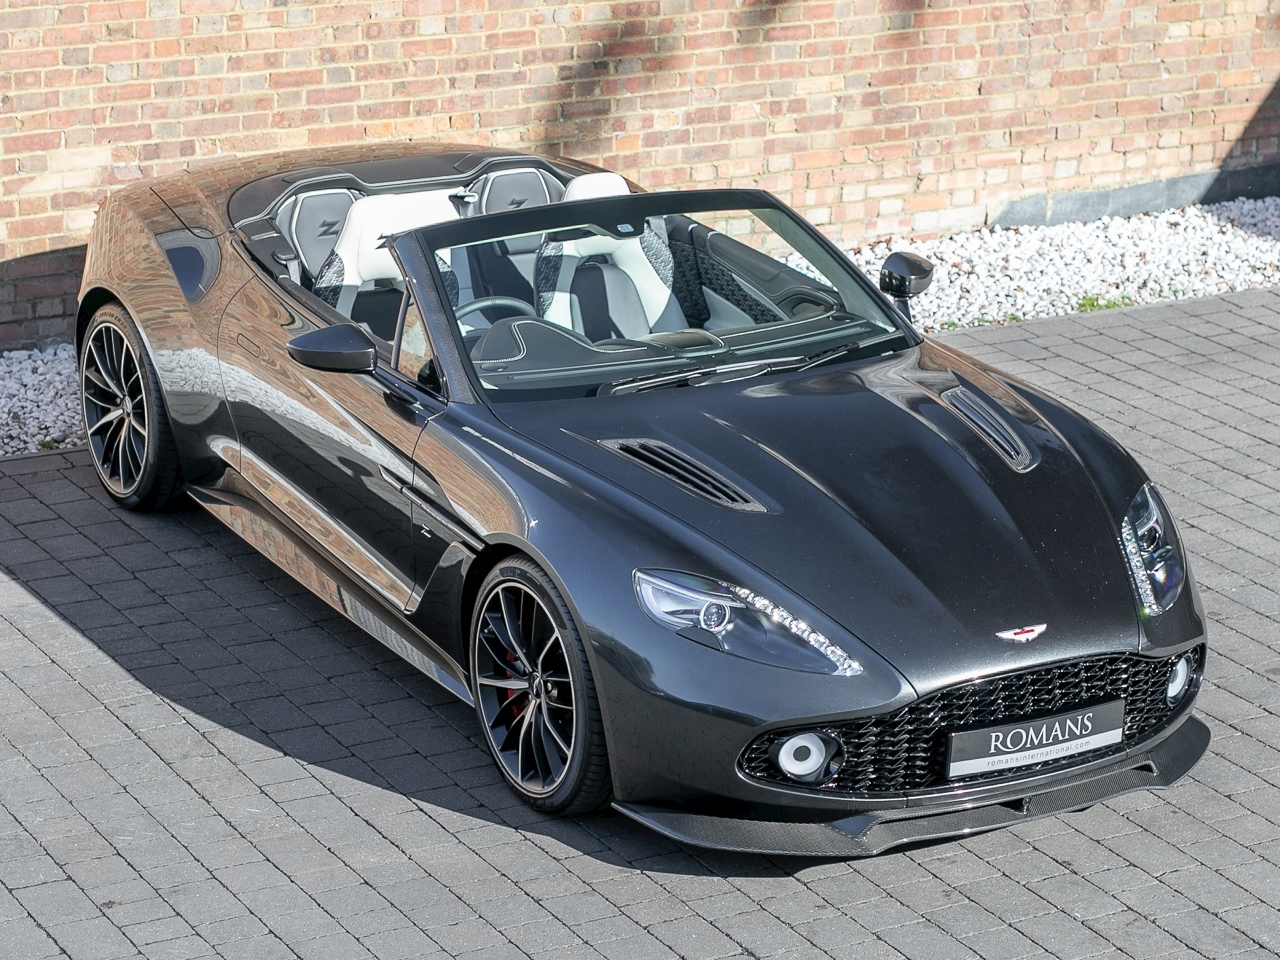 Aston Martin Vanquish Zagato Volante Listed For Sale With Eye Watering Price Tag